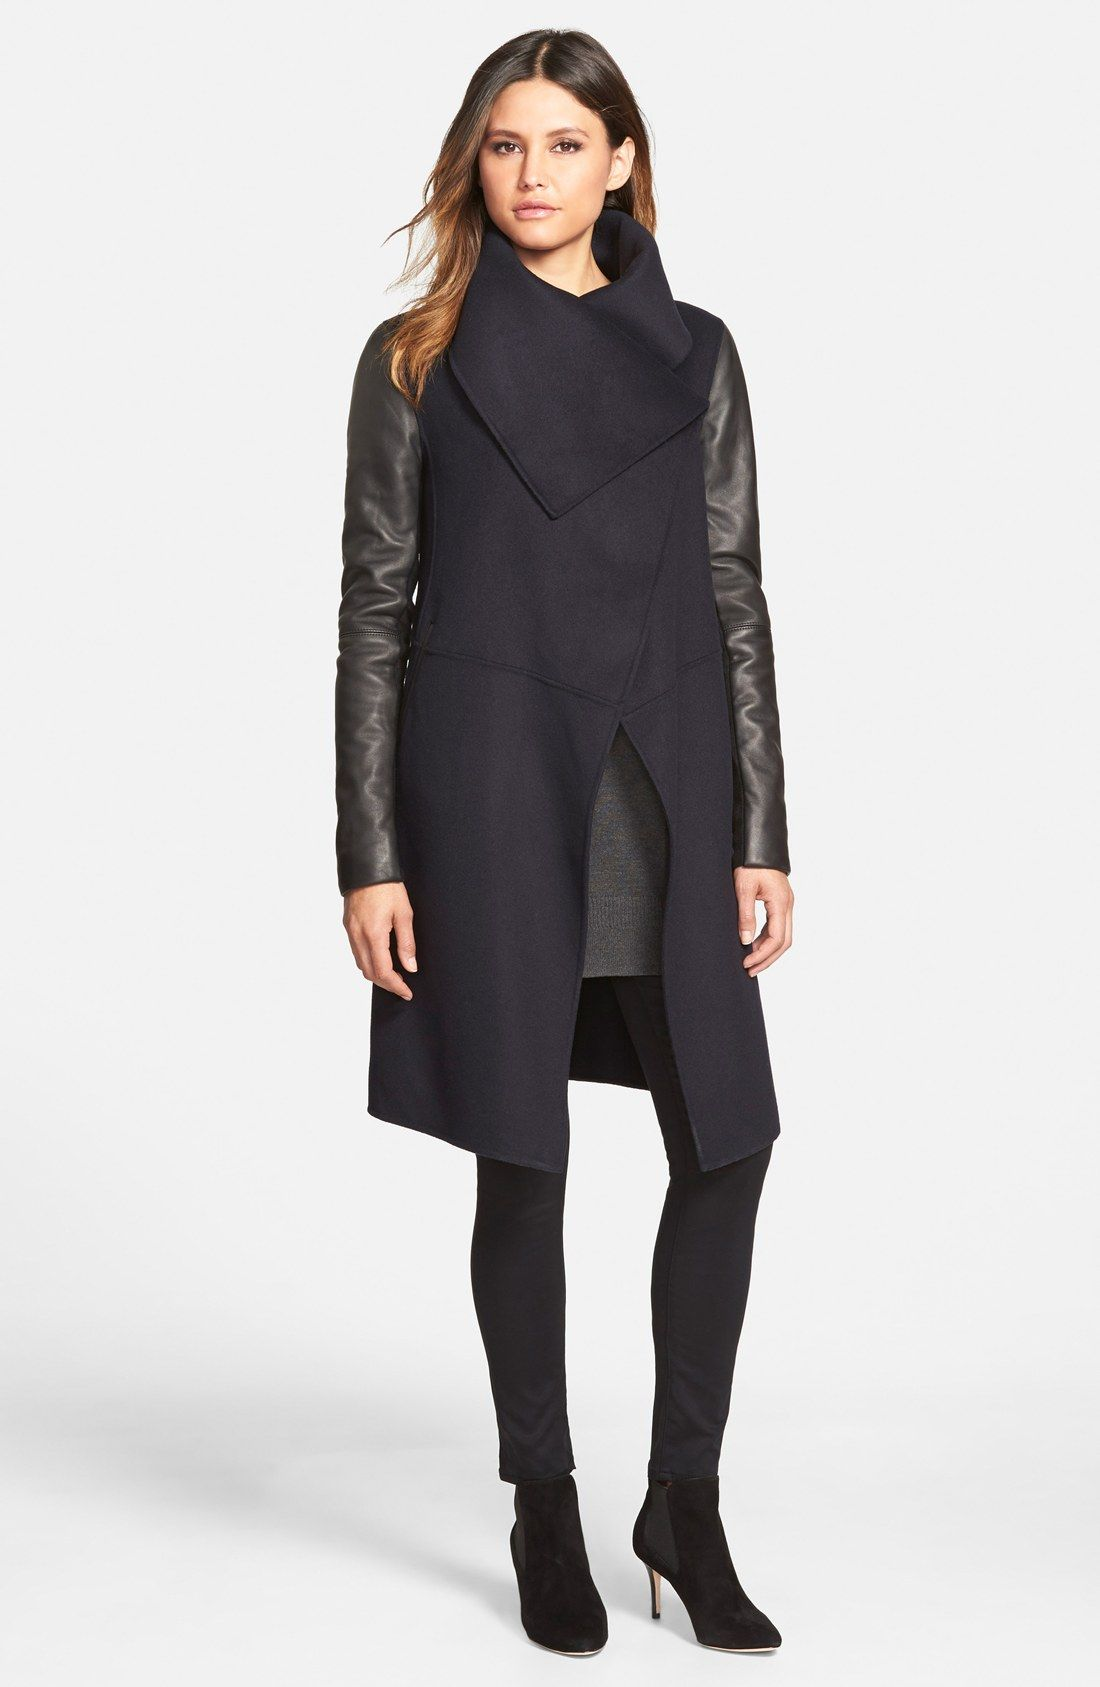 747d7b94ac2 Mackage Wool Blend Coat with Leather Sleeves